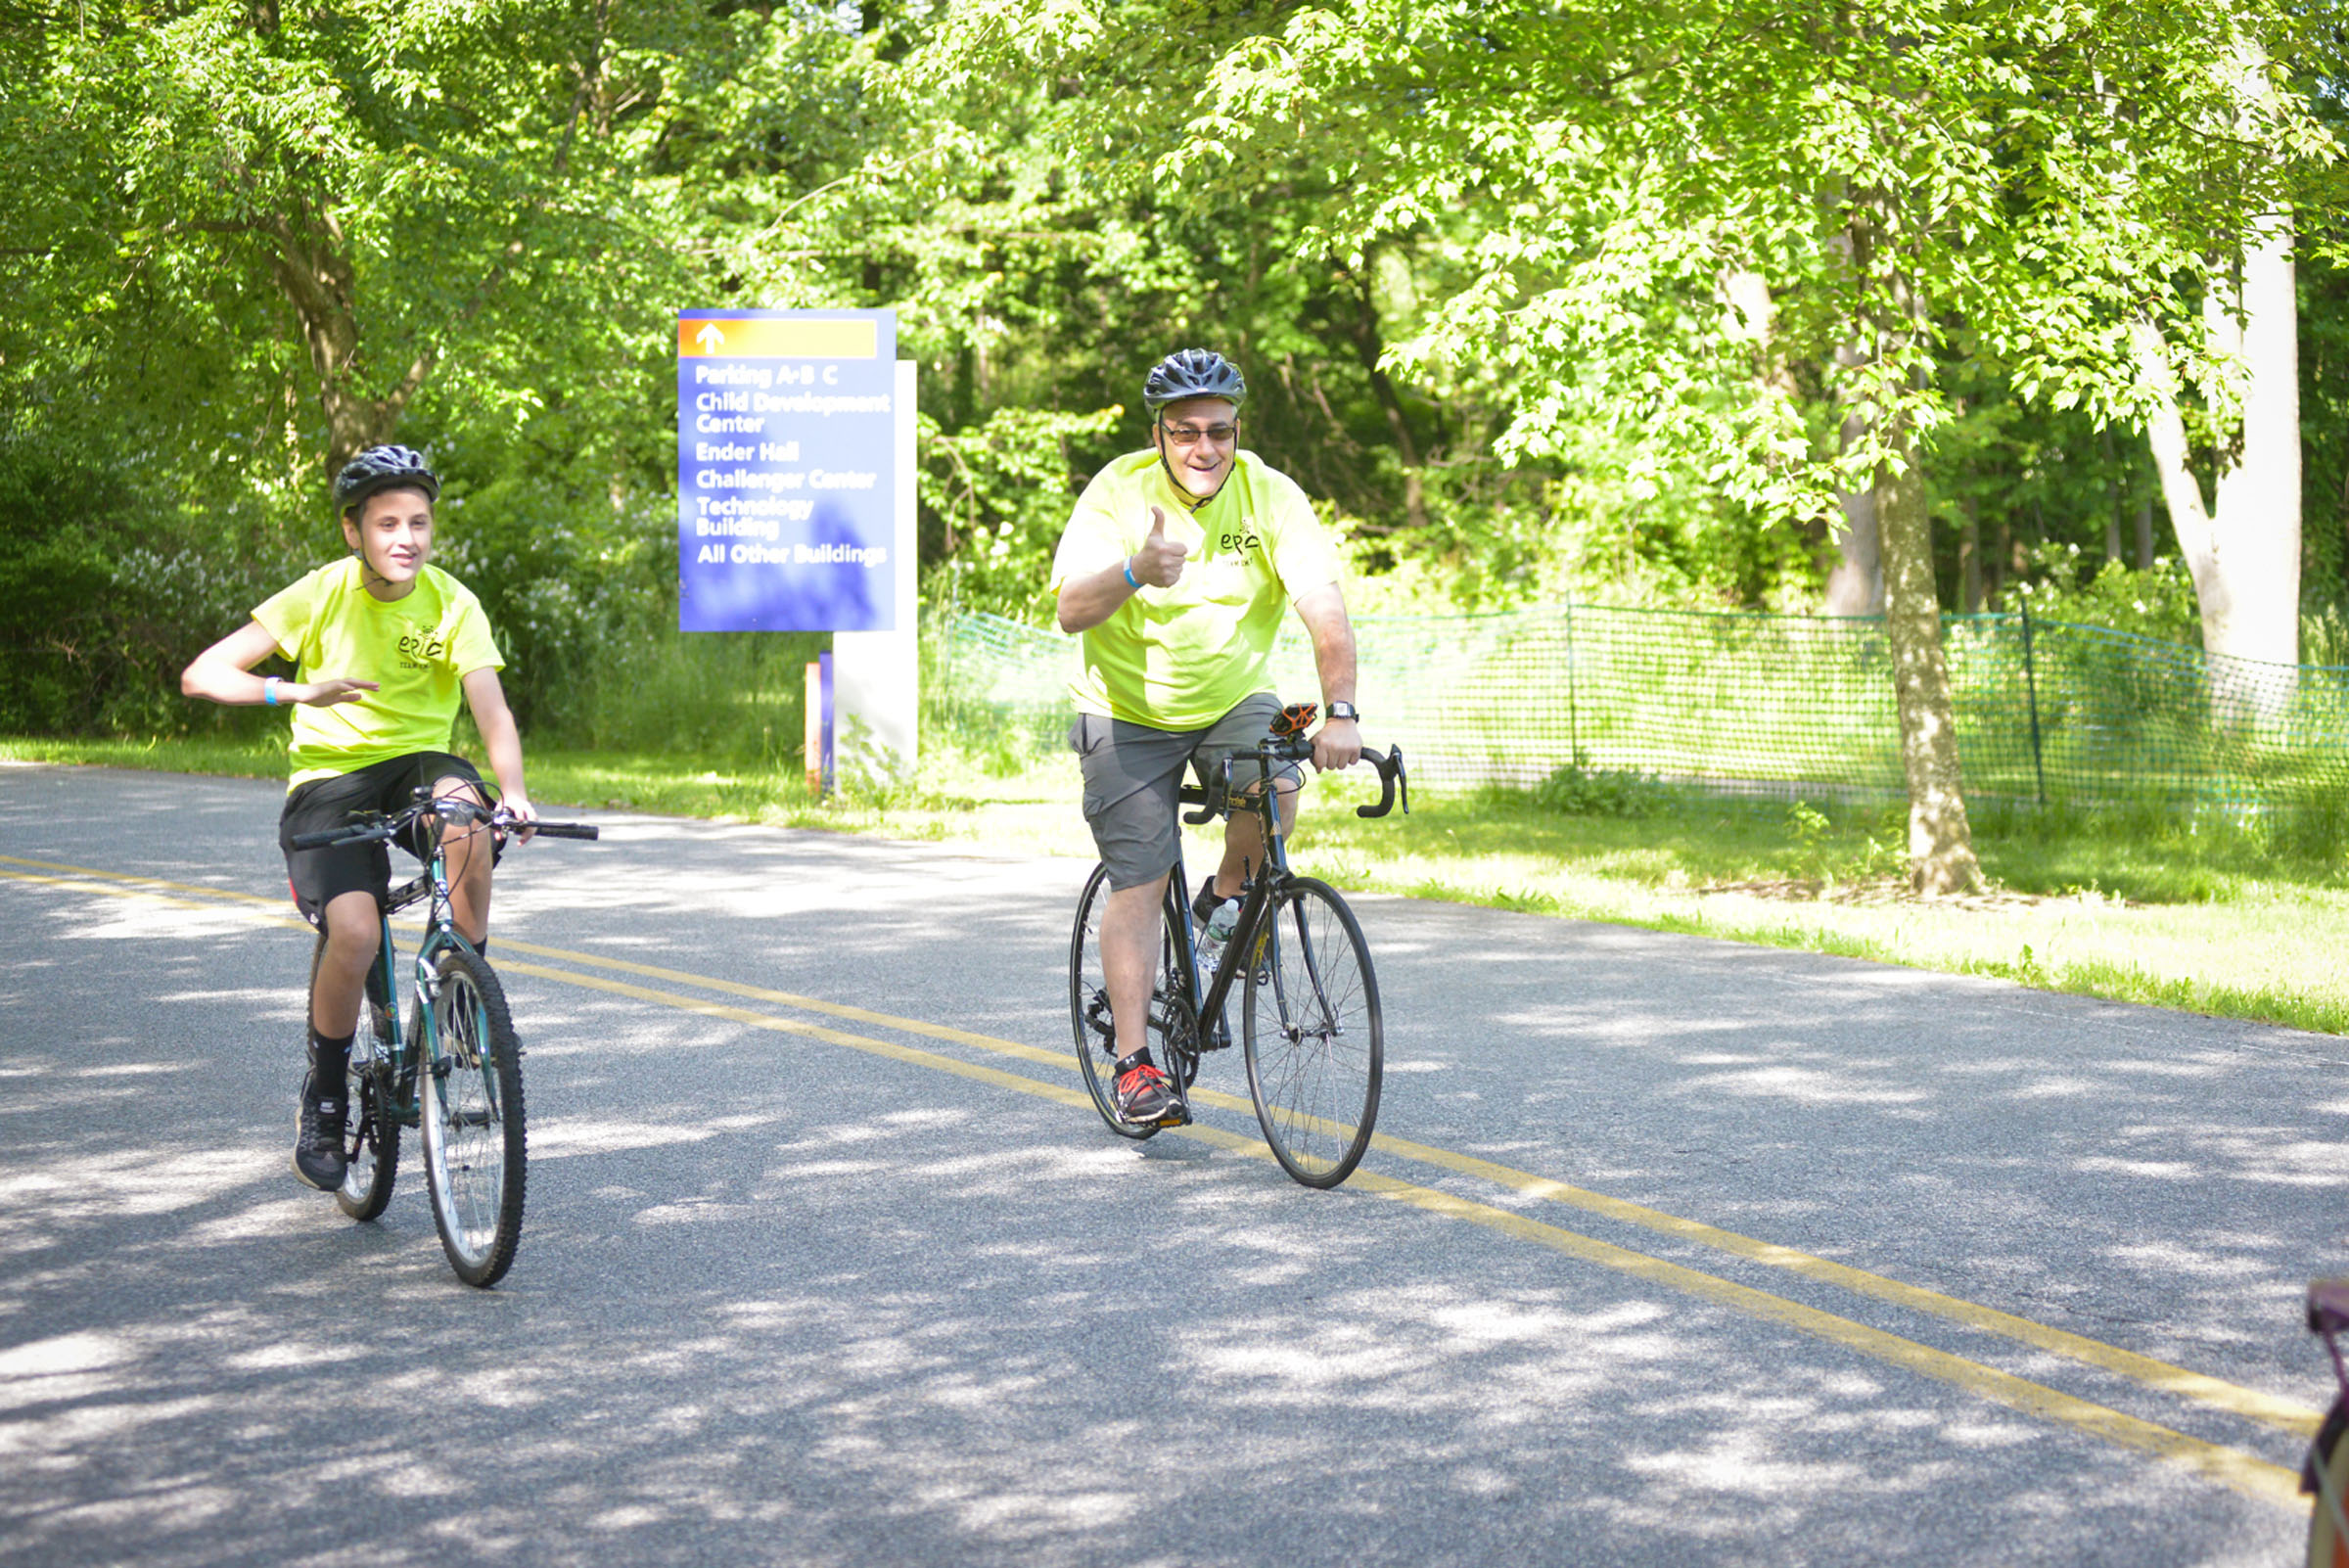 2017-06-04 GTD4A Charity Bike Ride - BCC - Paramus NJ-2097.jpg